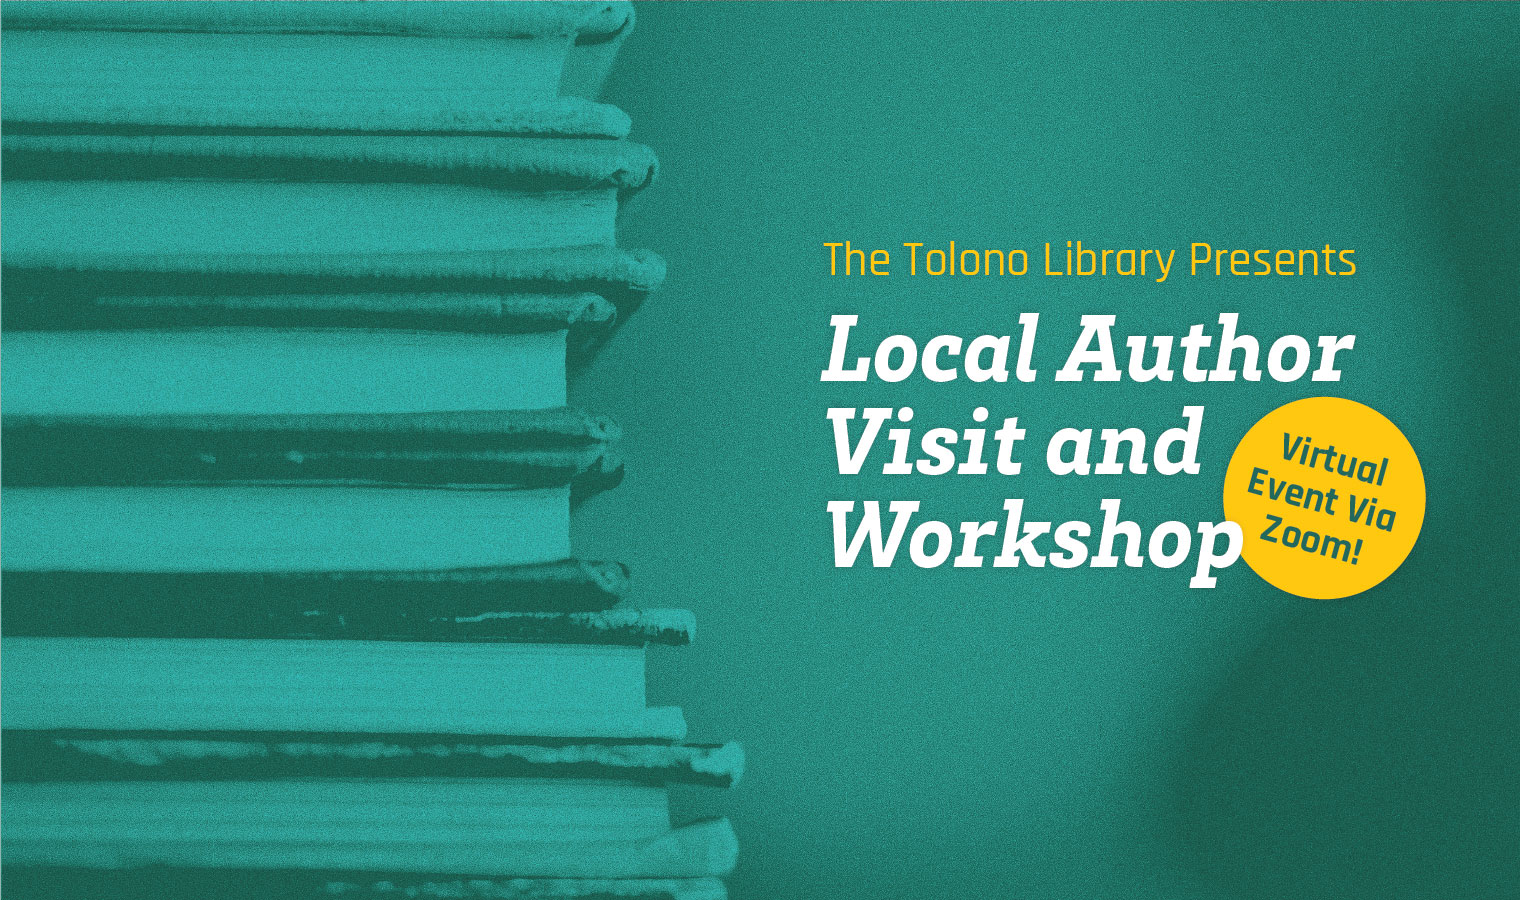 Local Author Visit and Workshop